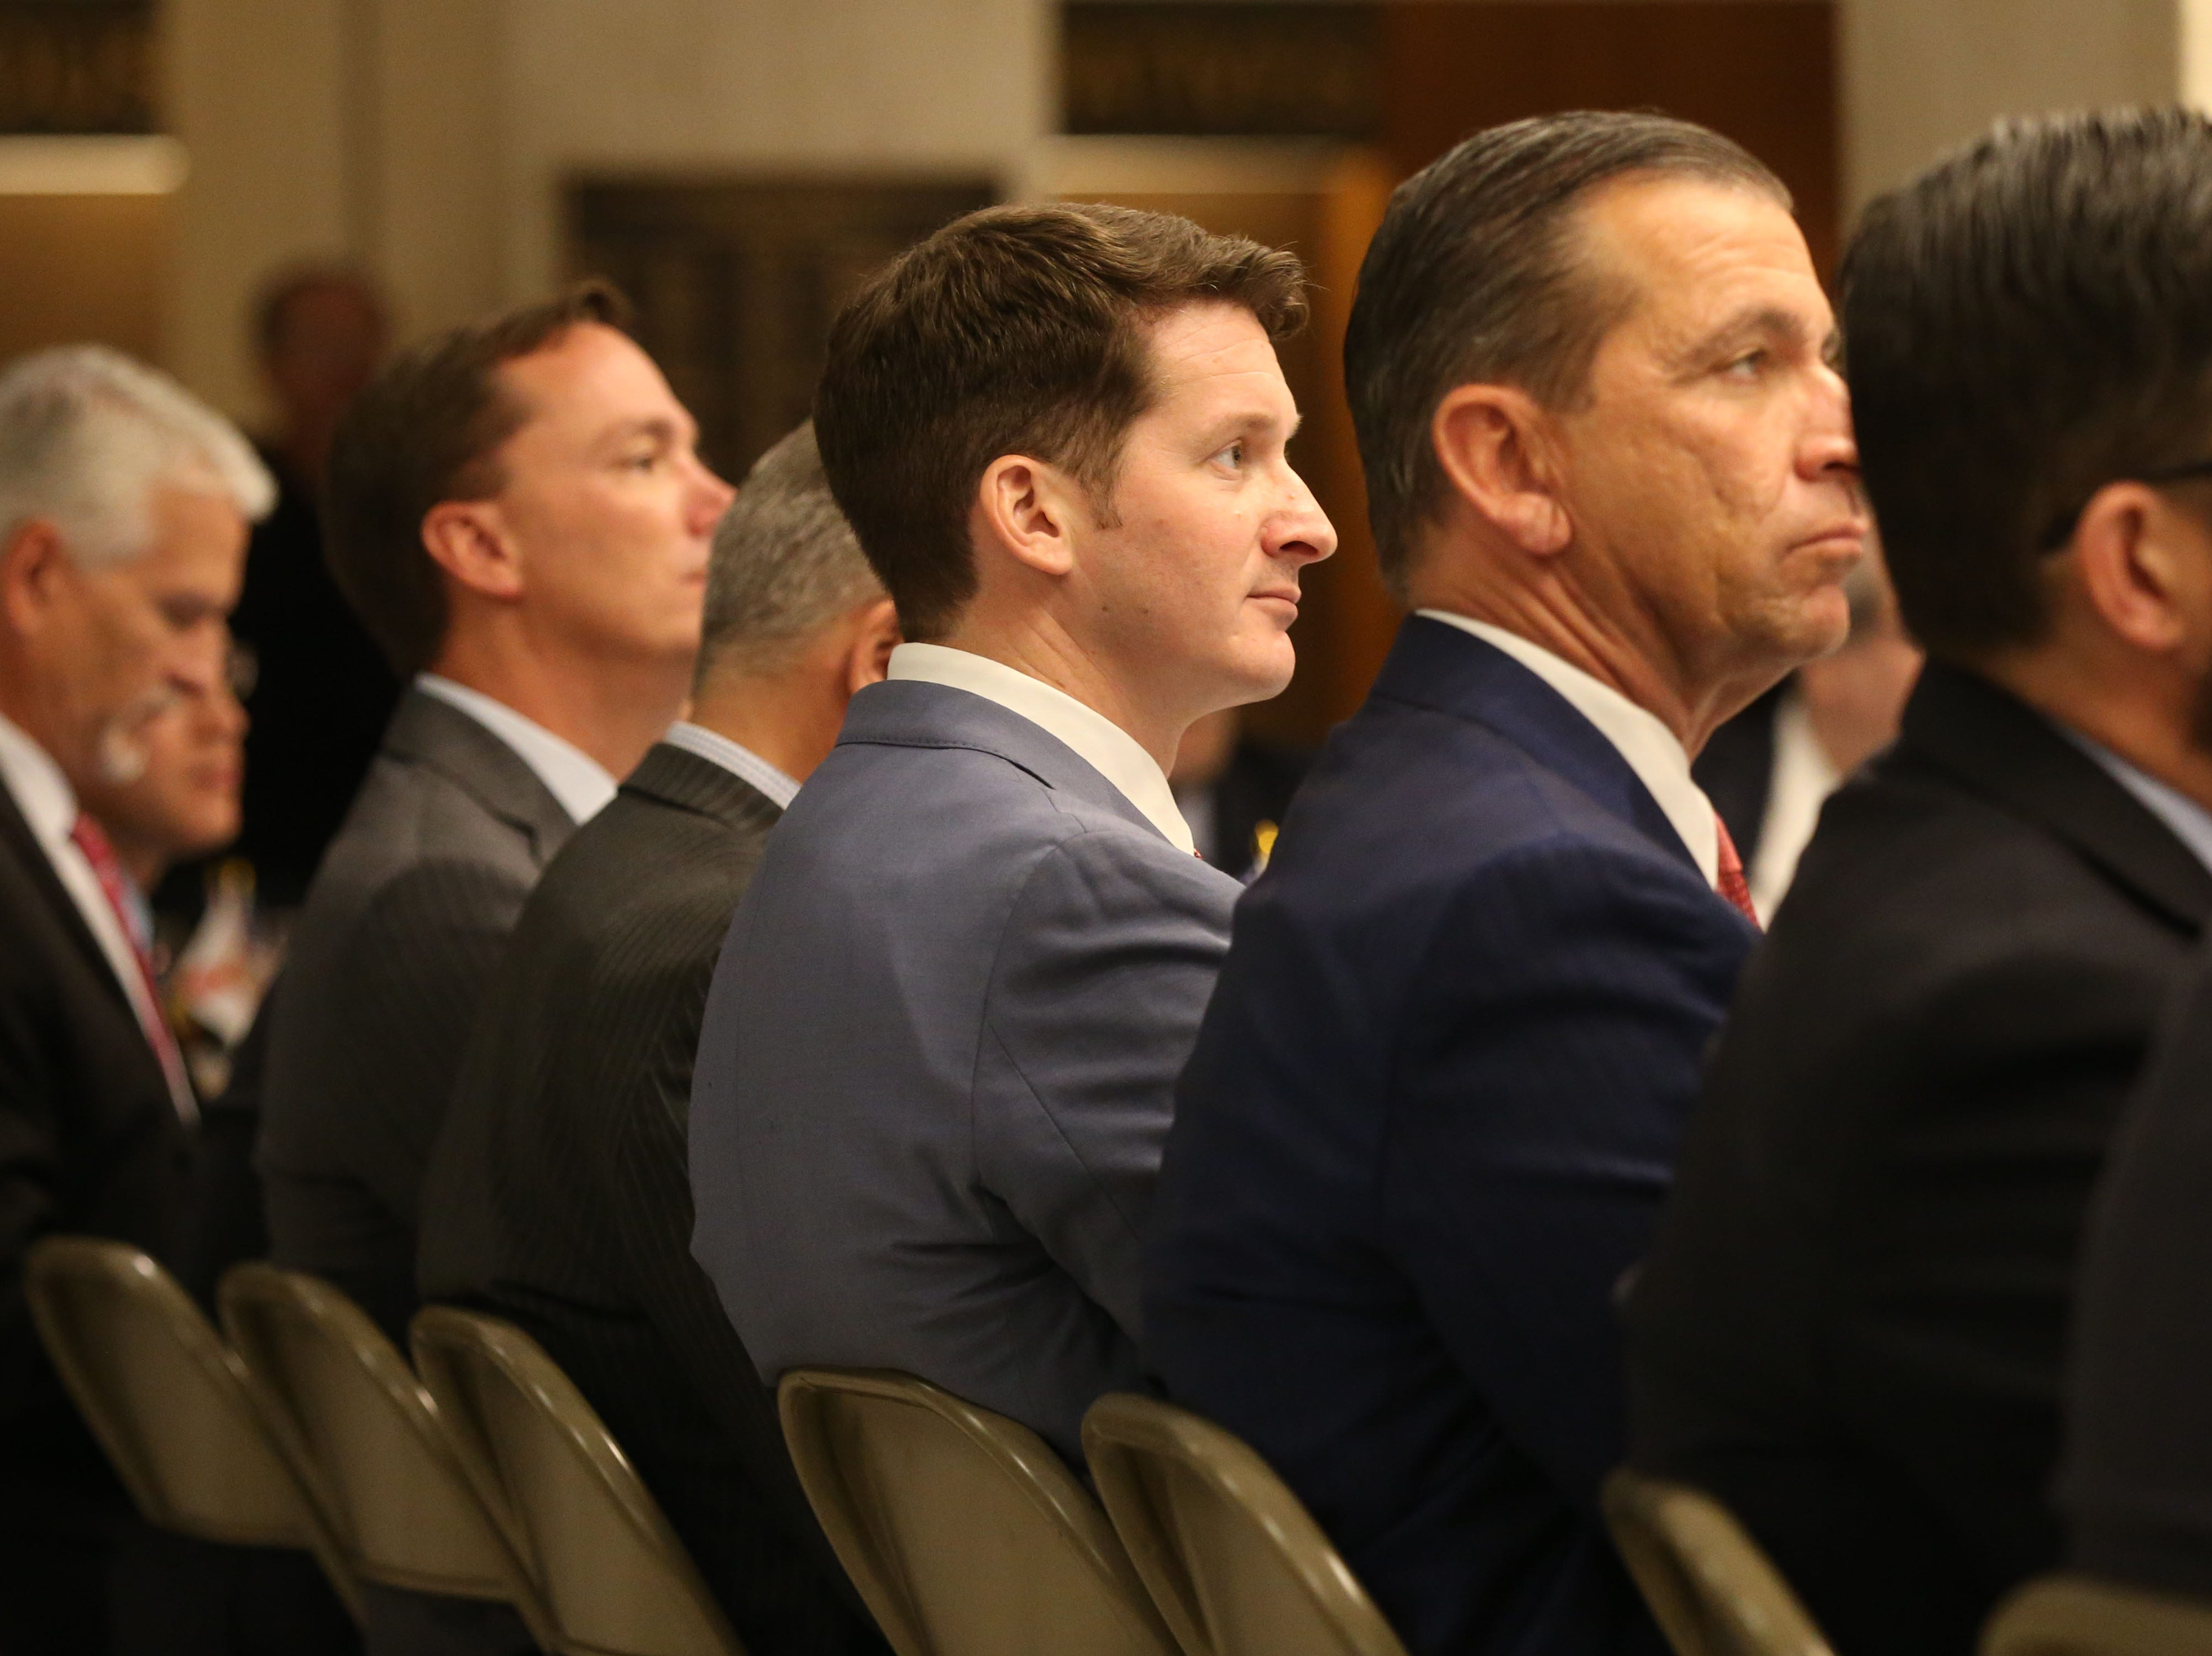 For the first time in Inaugural history, Gov. Ron DeSantis addresses FloridaÕs Legislative leaders and Cabinet officials. DeSantis discusses his plans to work with our stateÕs elected leaders to achieve a Bold Vision for a Brighter Future, Tuesday, Jan. 8, 2019. Representative Dane Eagle listens intently as Gov. Ron DeSantis speaks at the luncheon.